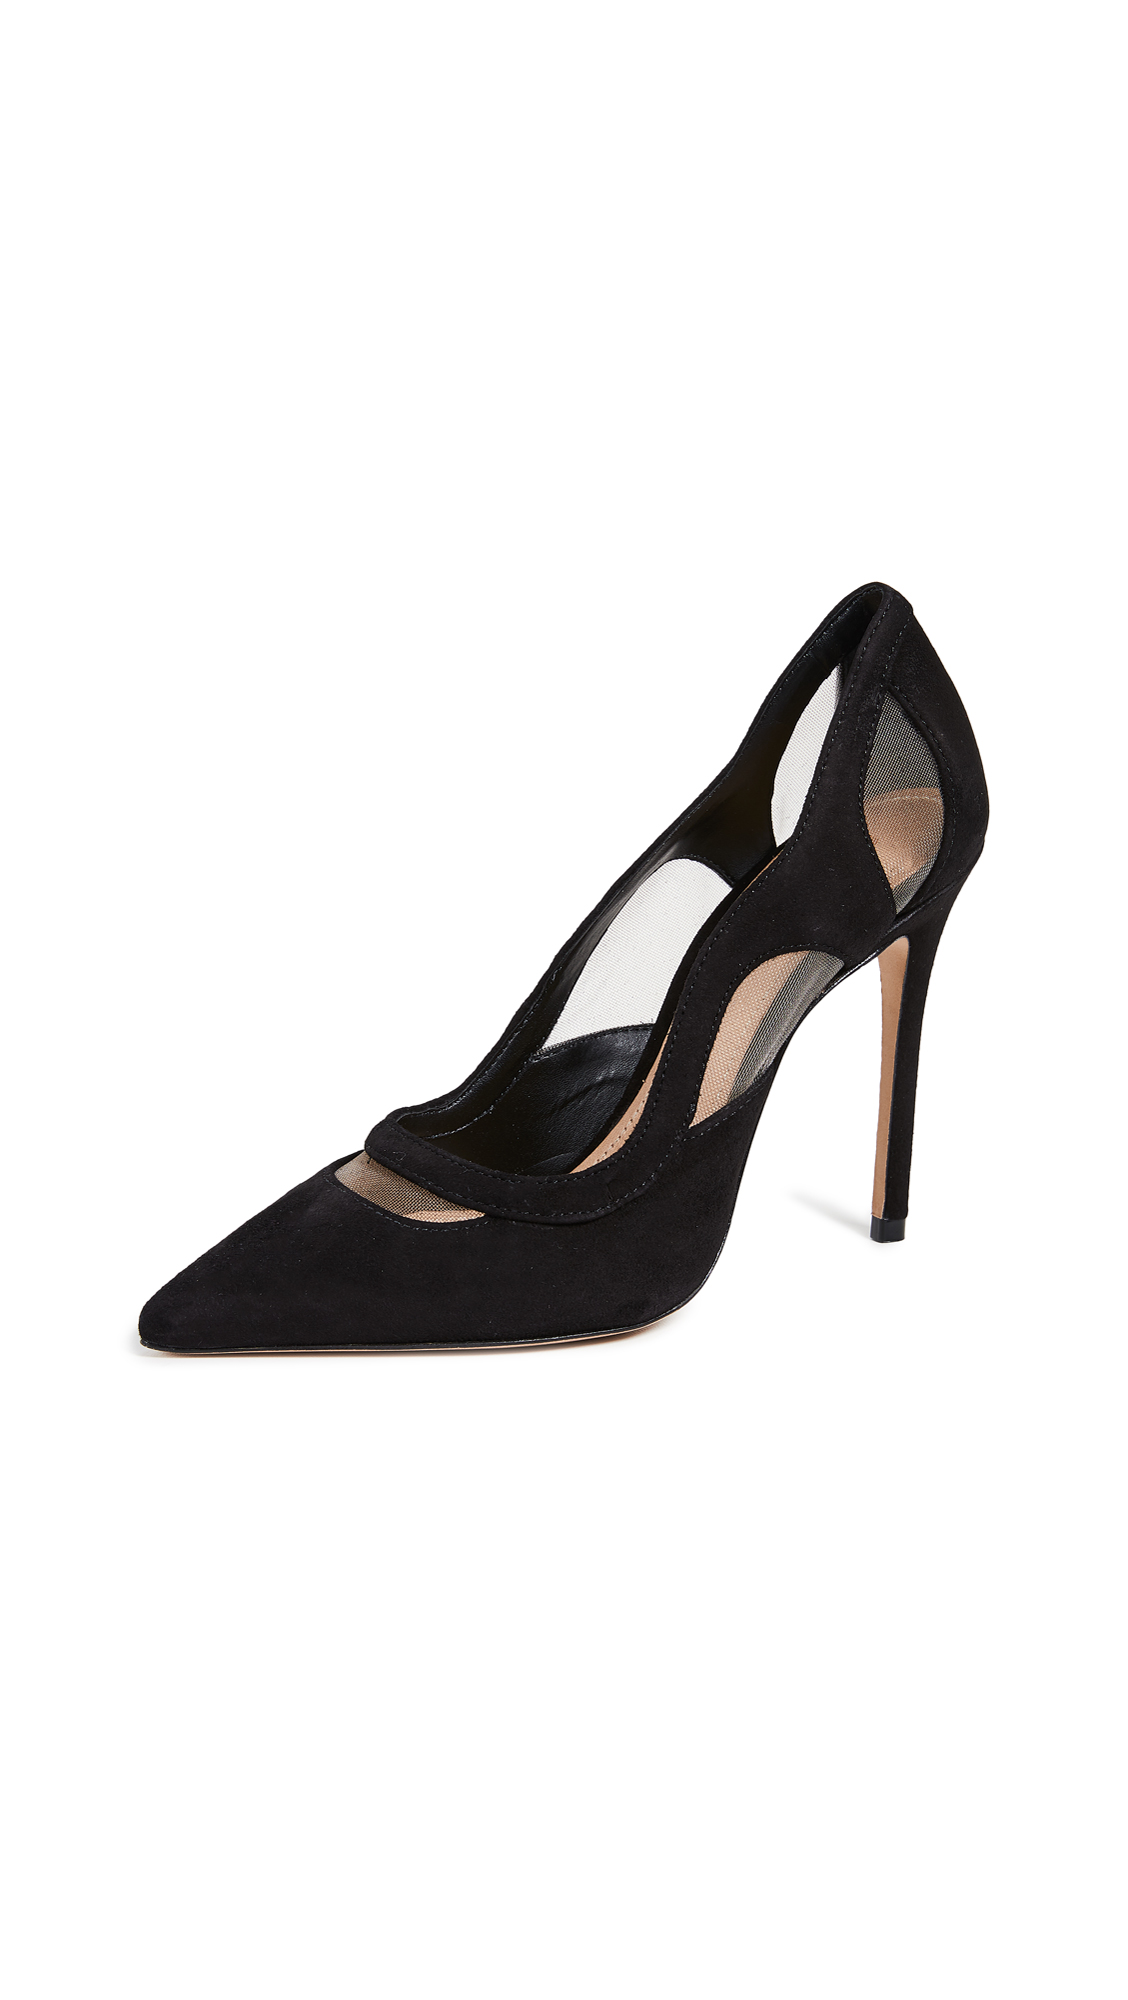 Schutz Poliany Point Toe Pumps - Black